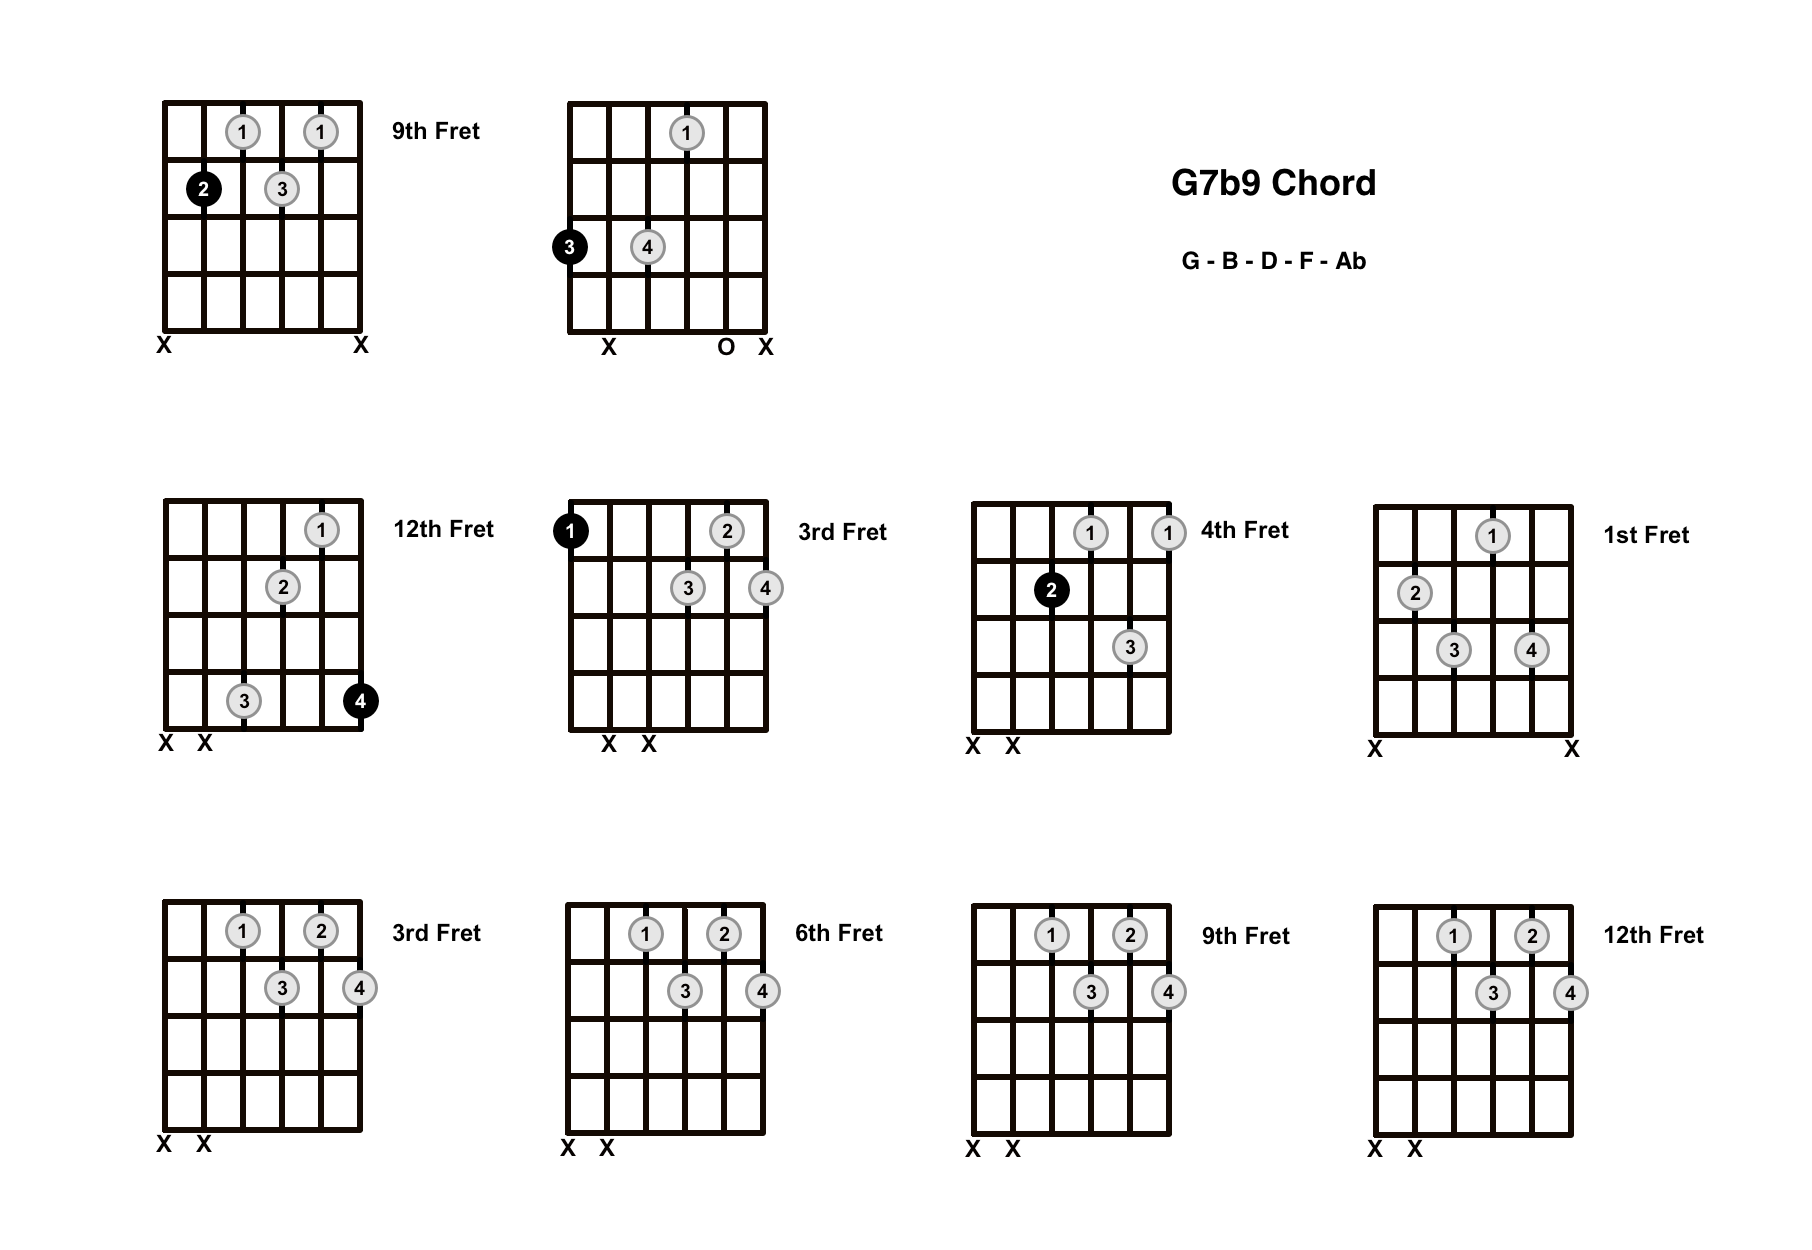 G7b9 Chord On The Guitar (G7 Flat 9) – Diagrams, Finger Positions and Theory